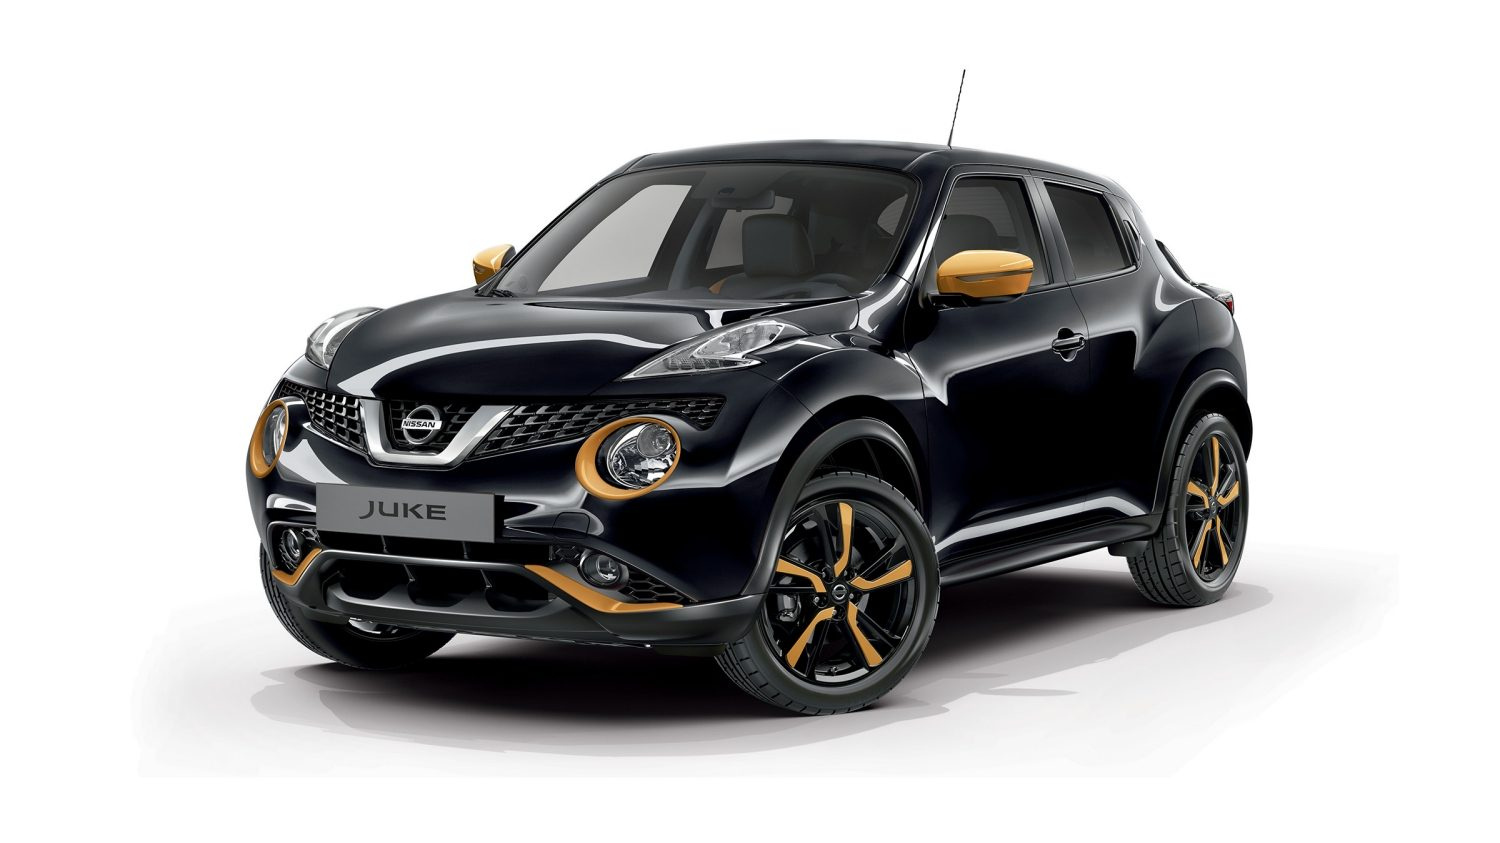 Nissan Juke Fun Edition